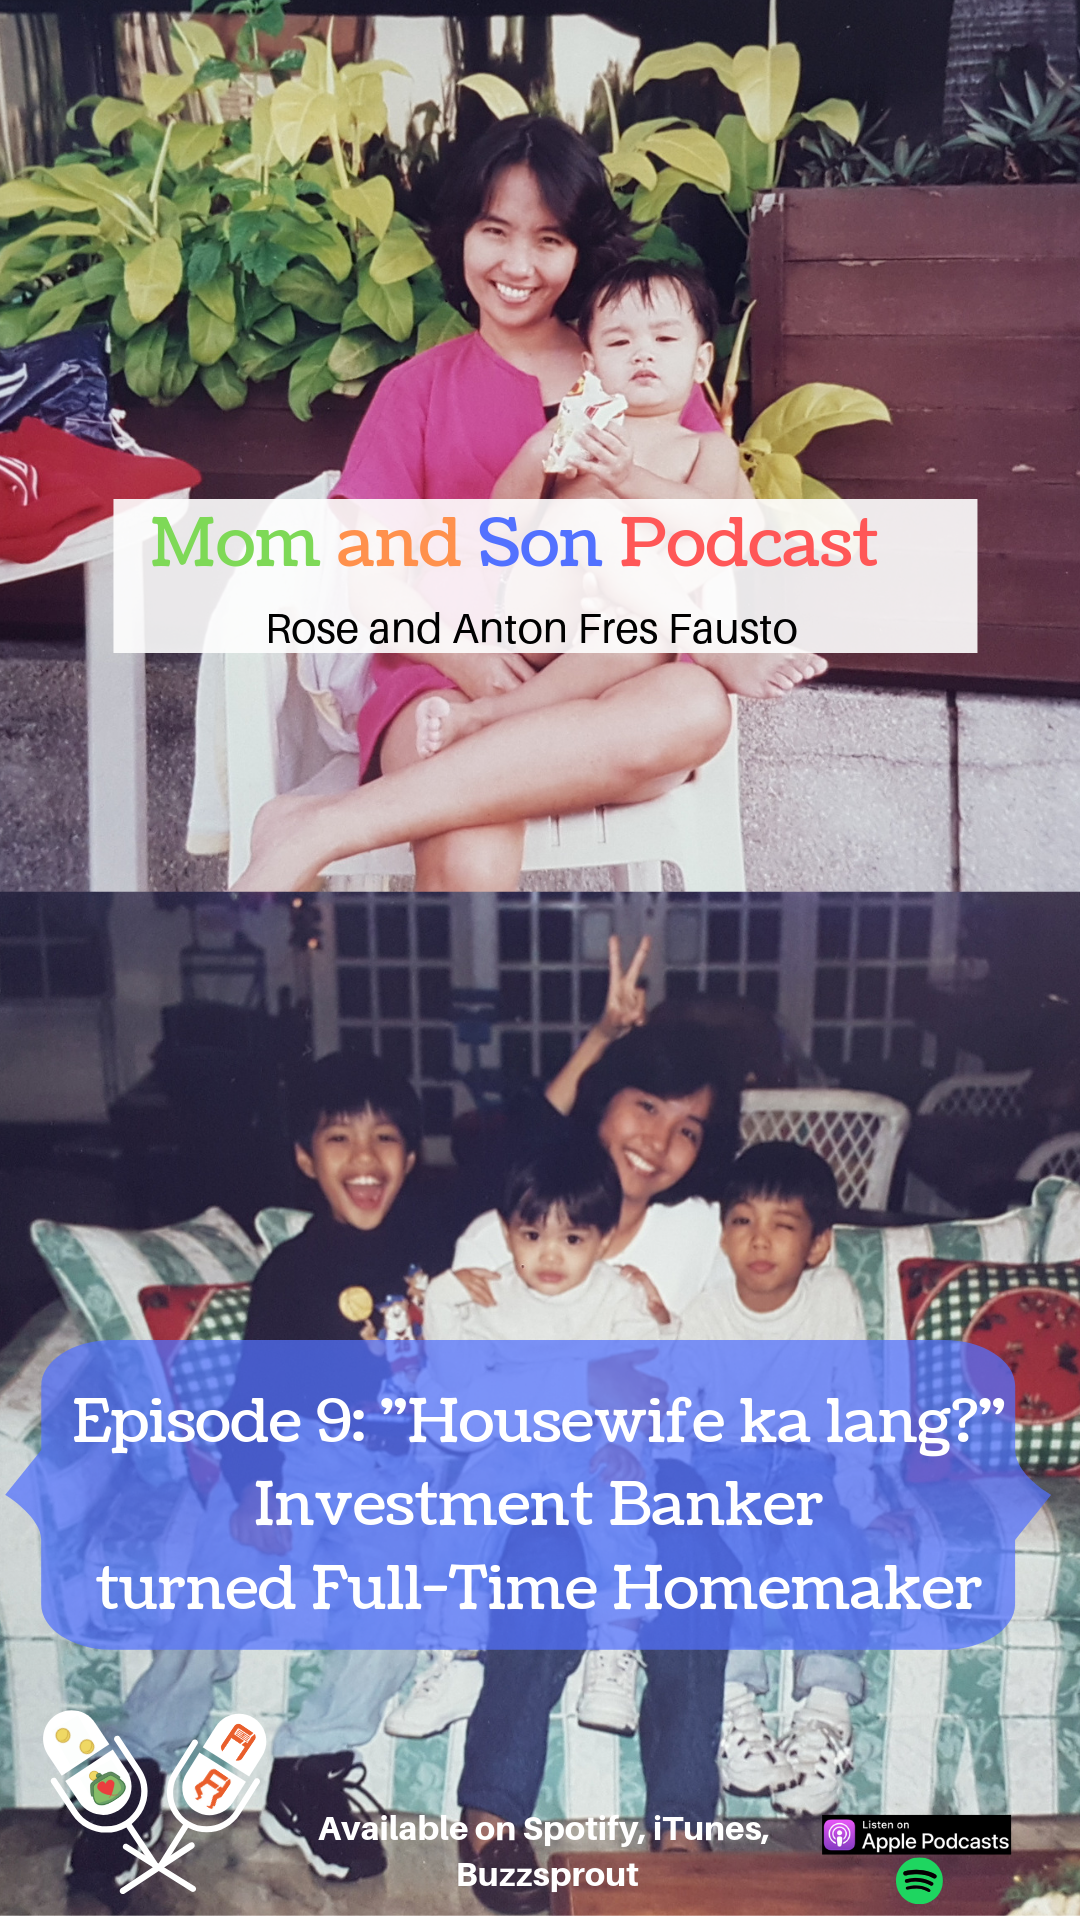 mom-and-son-podcast-10